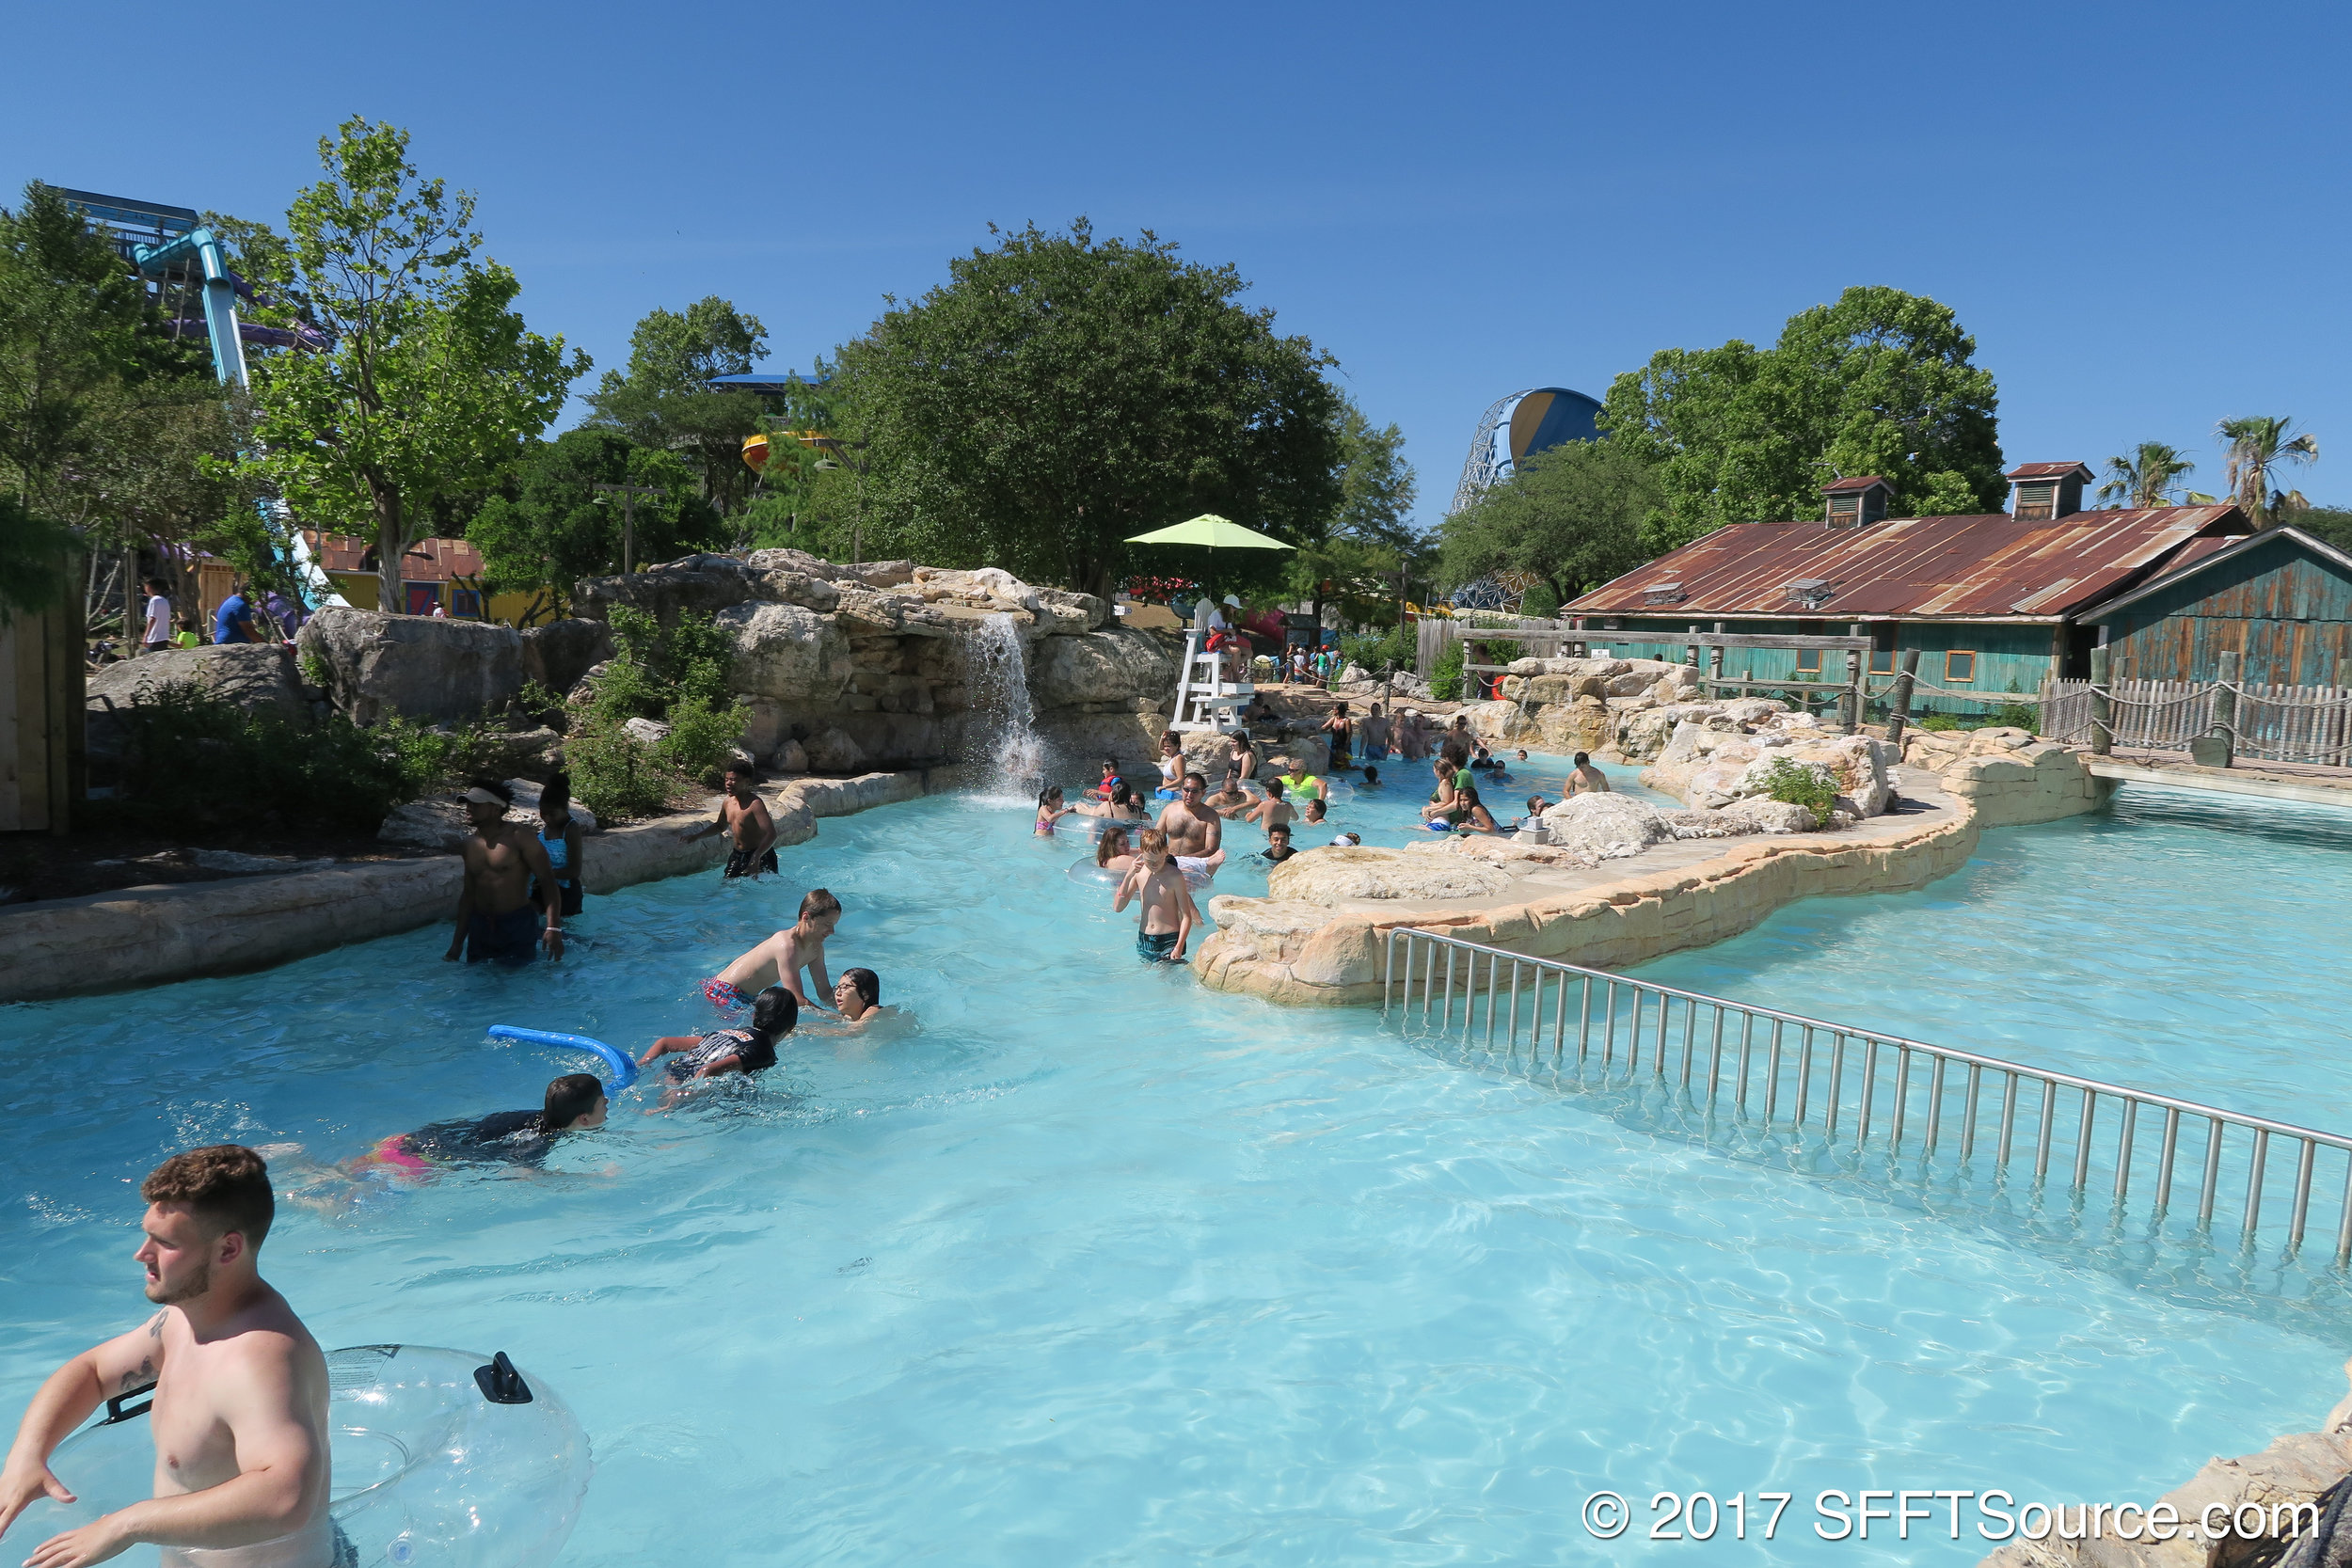 Guests can use a tube or swim the river.